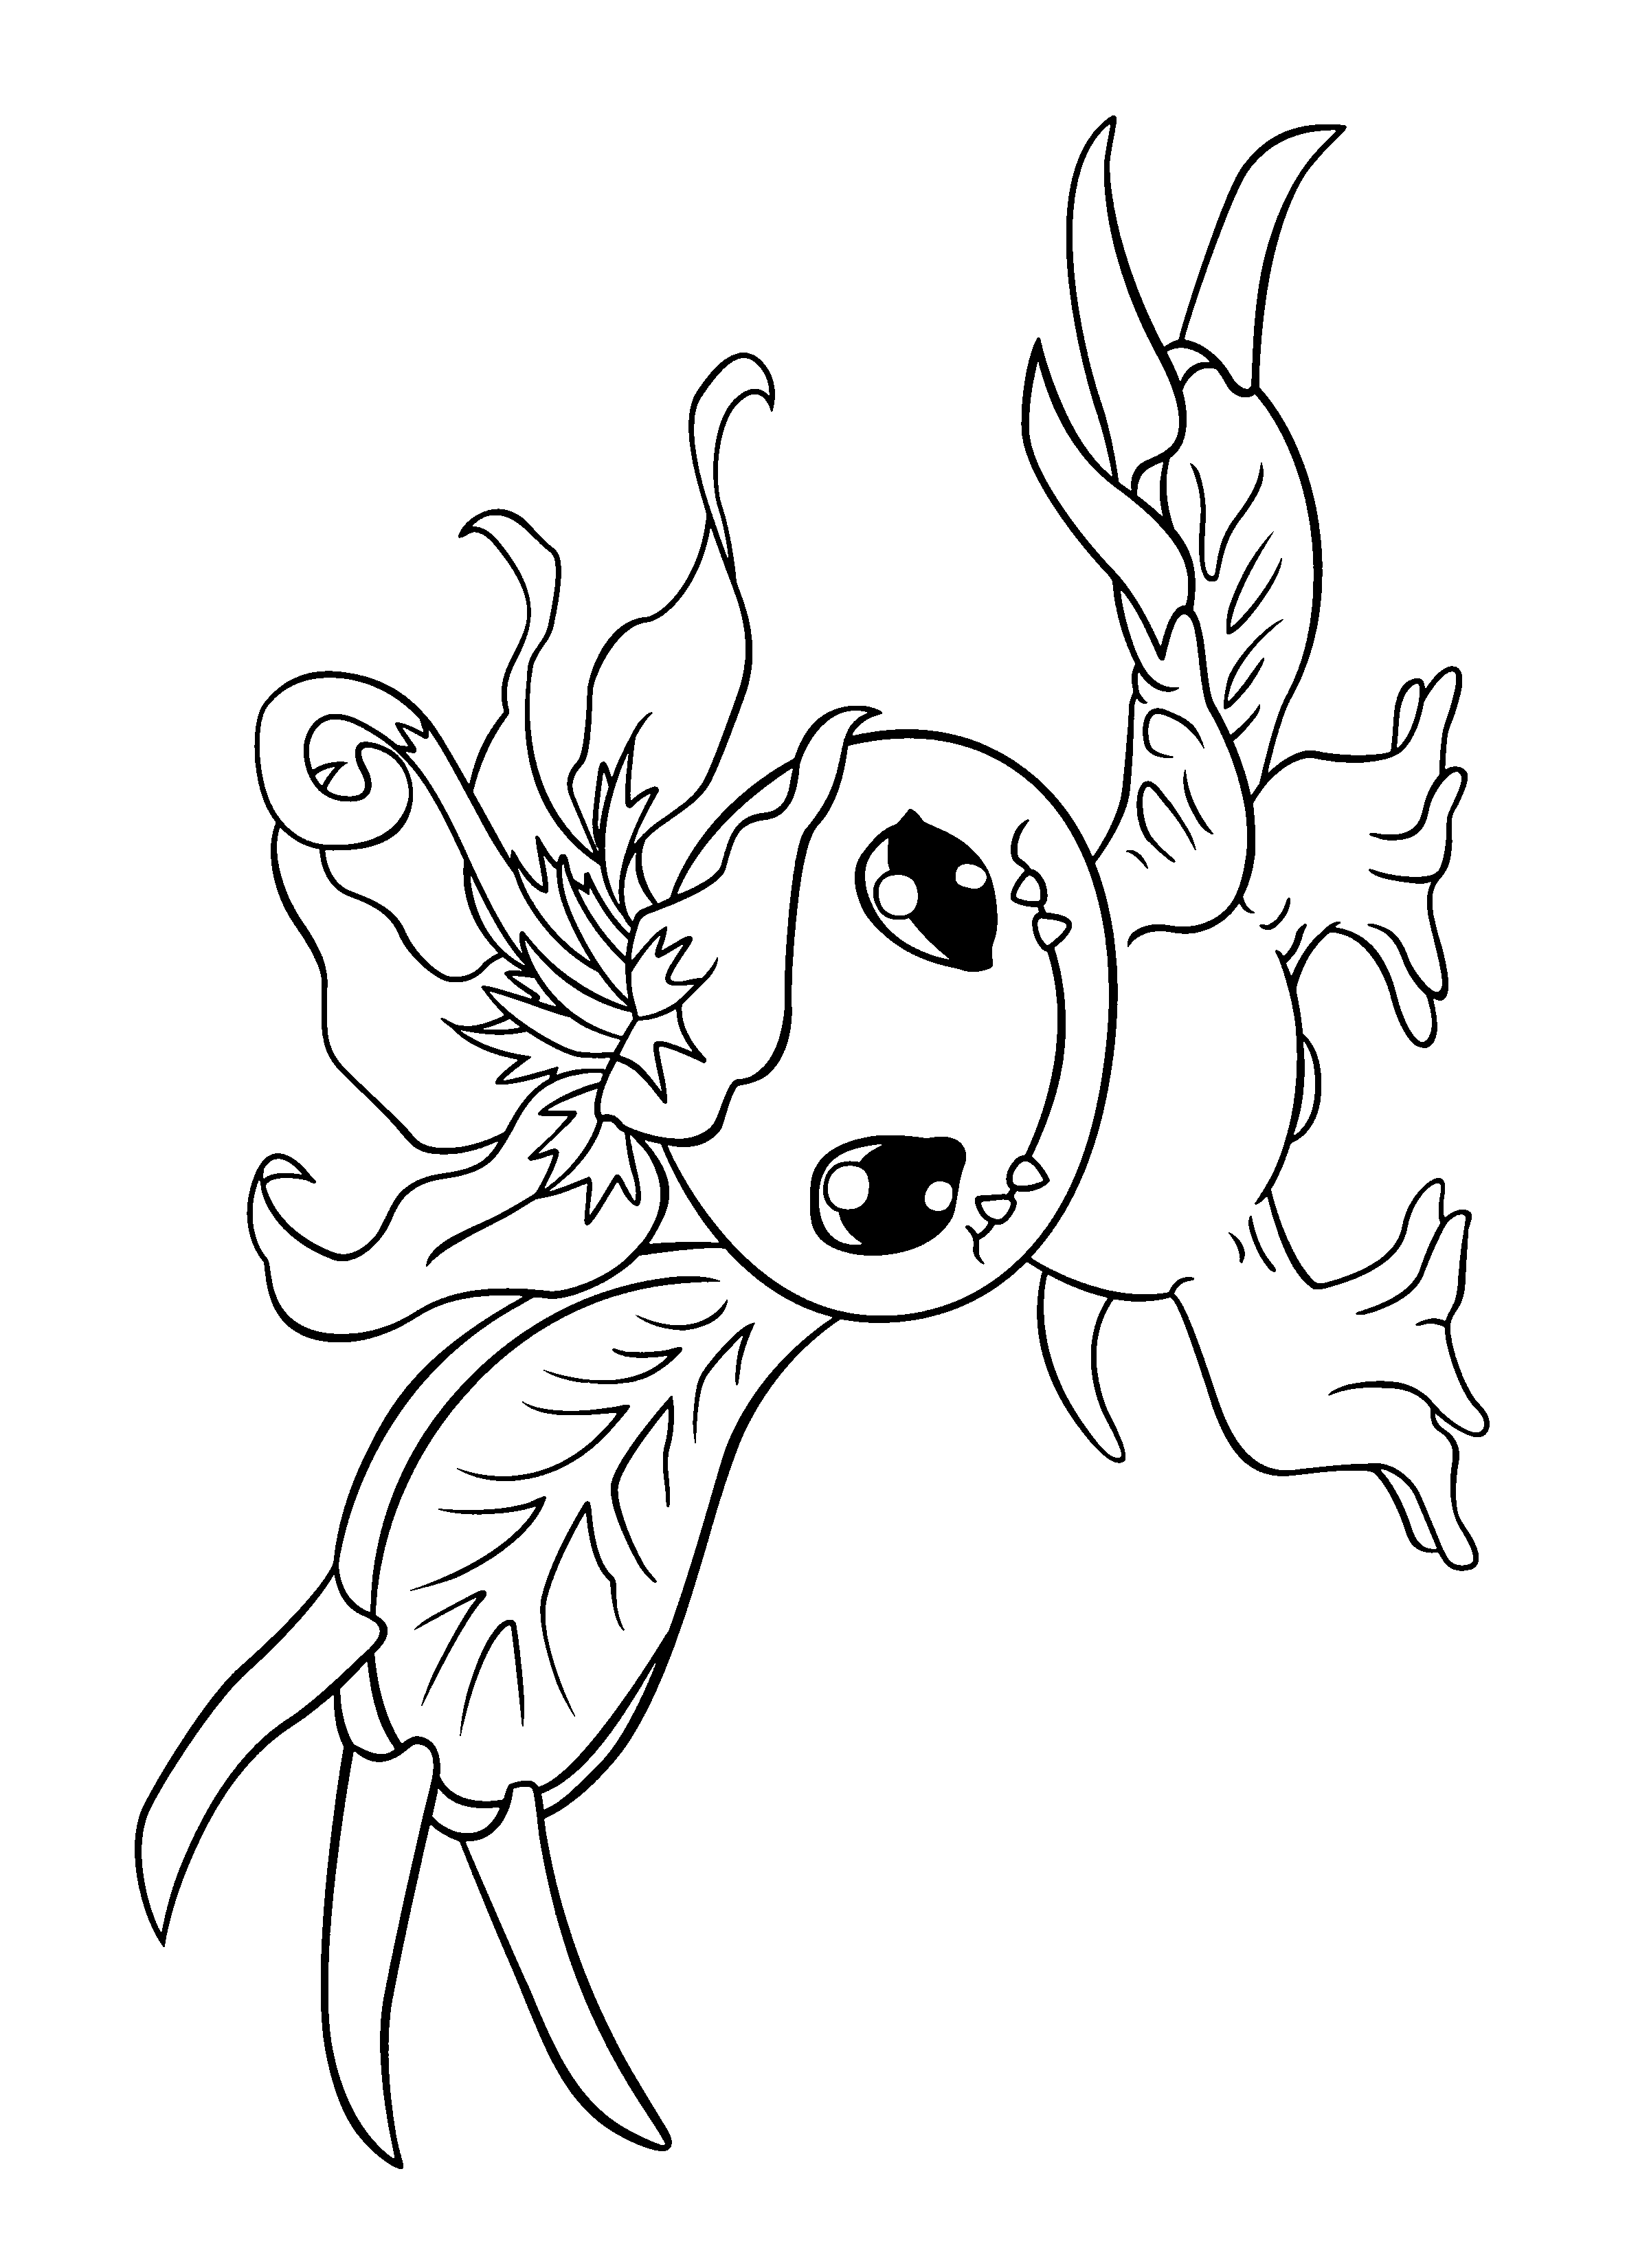 Coloring Page Digimon coloring